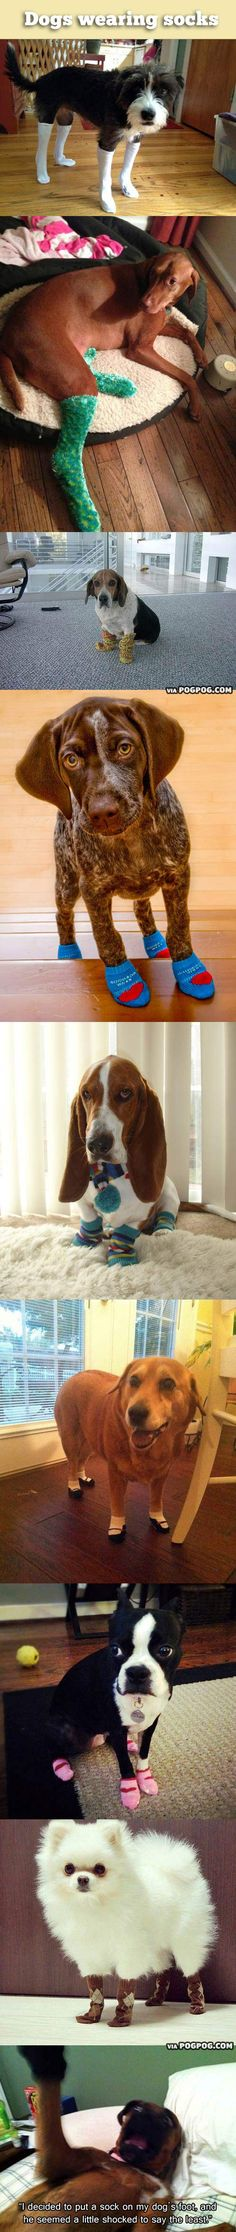 I should do this to my dog!